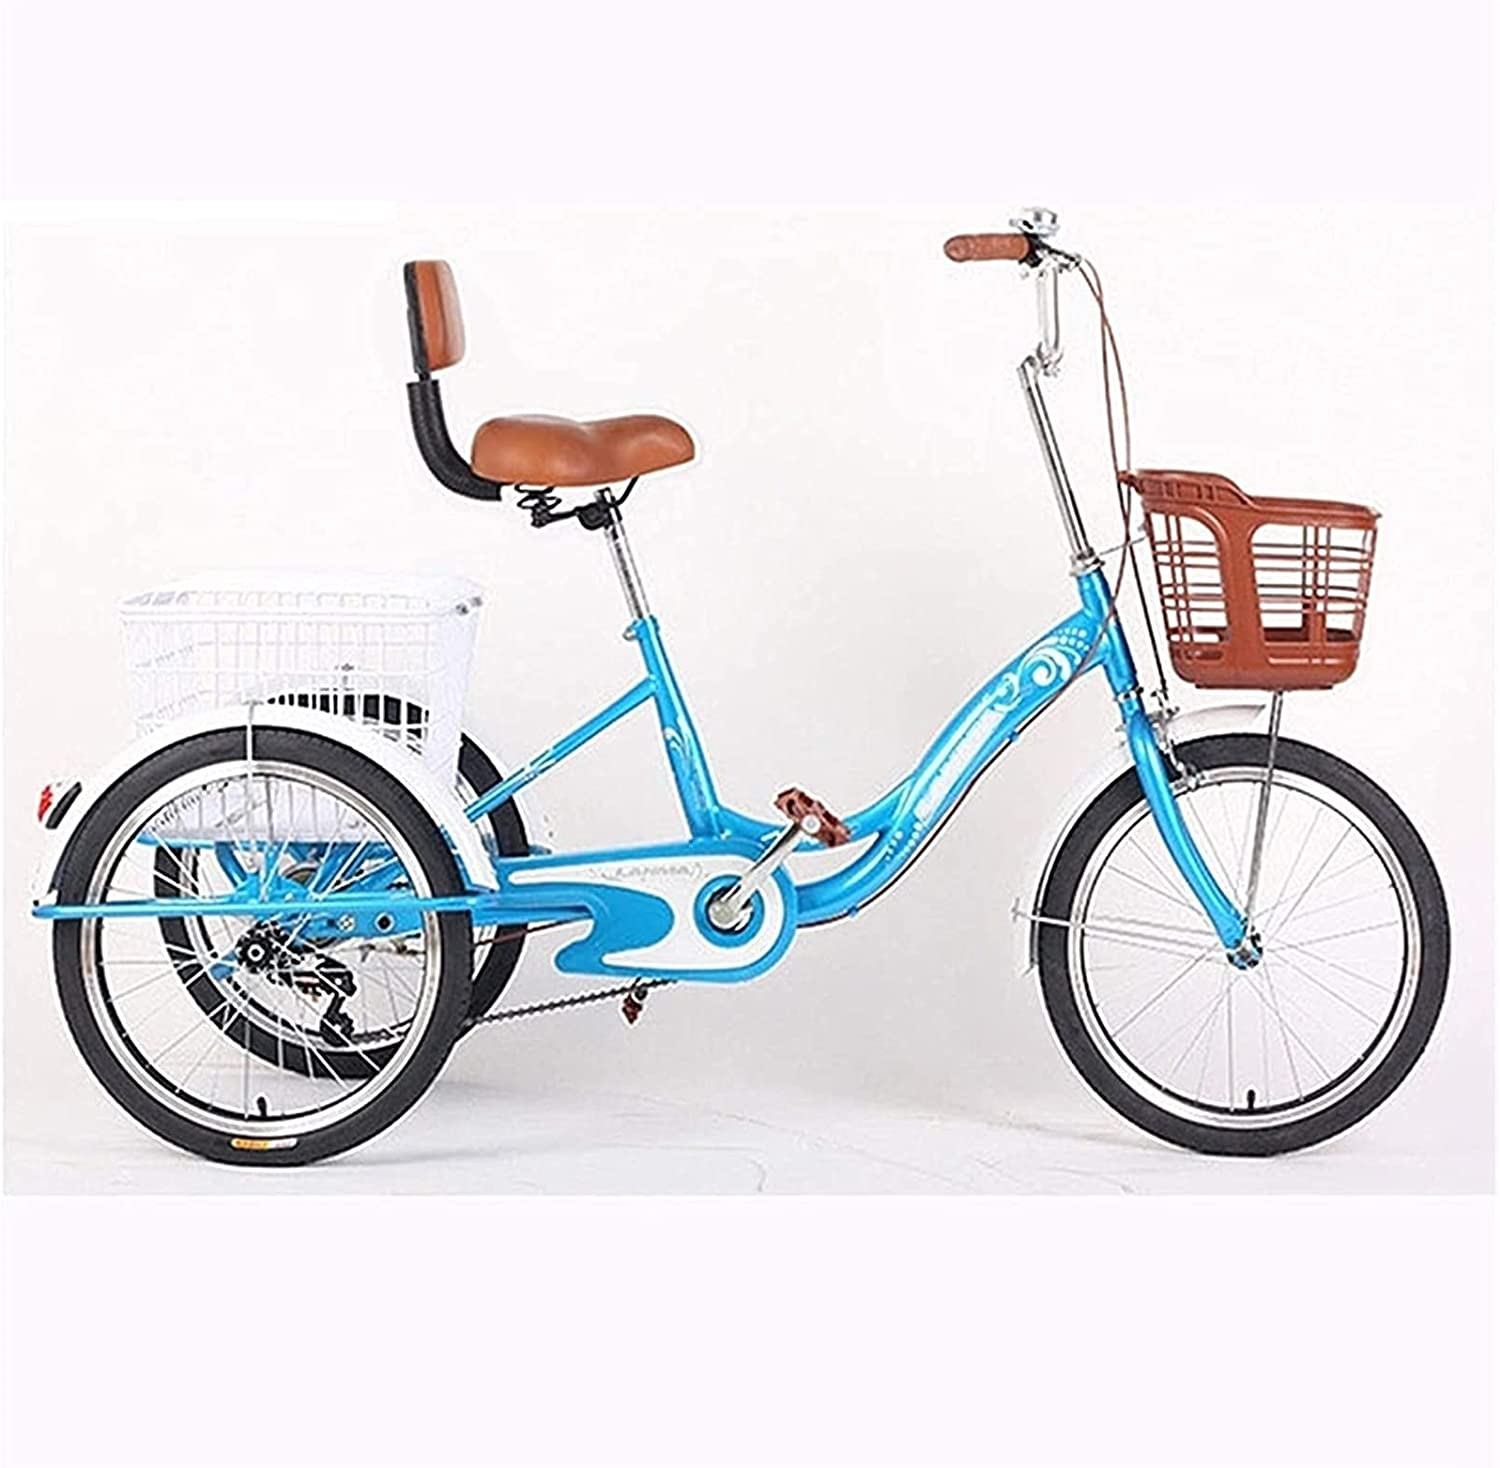 Outstanding ZNND Sales for sale Tricycle for Adults 3 Adult Carg Trike Bike Wheels